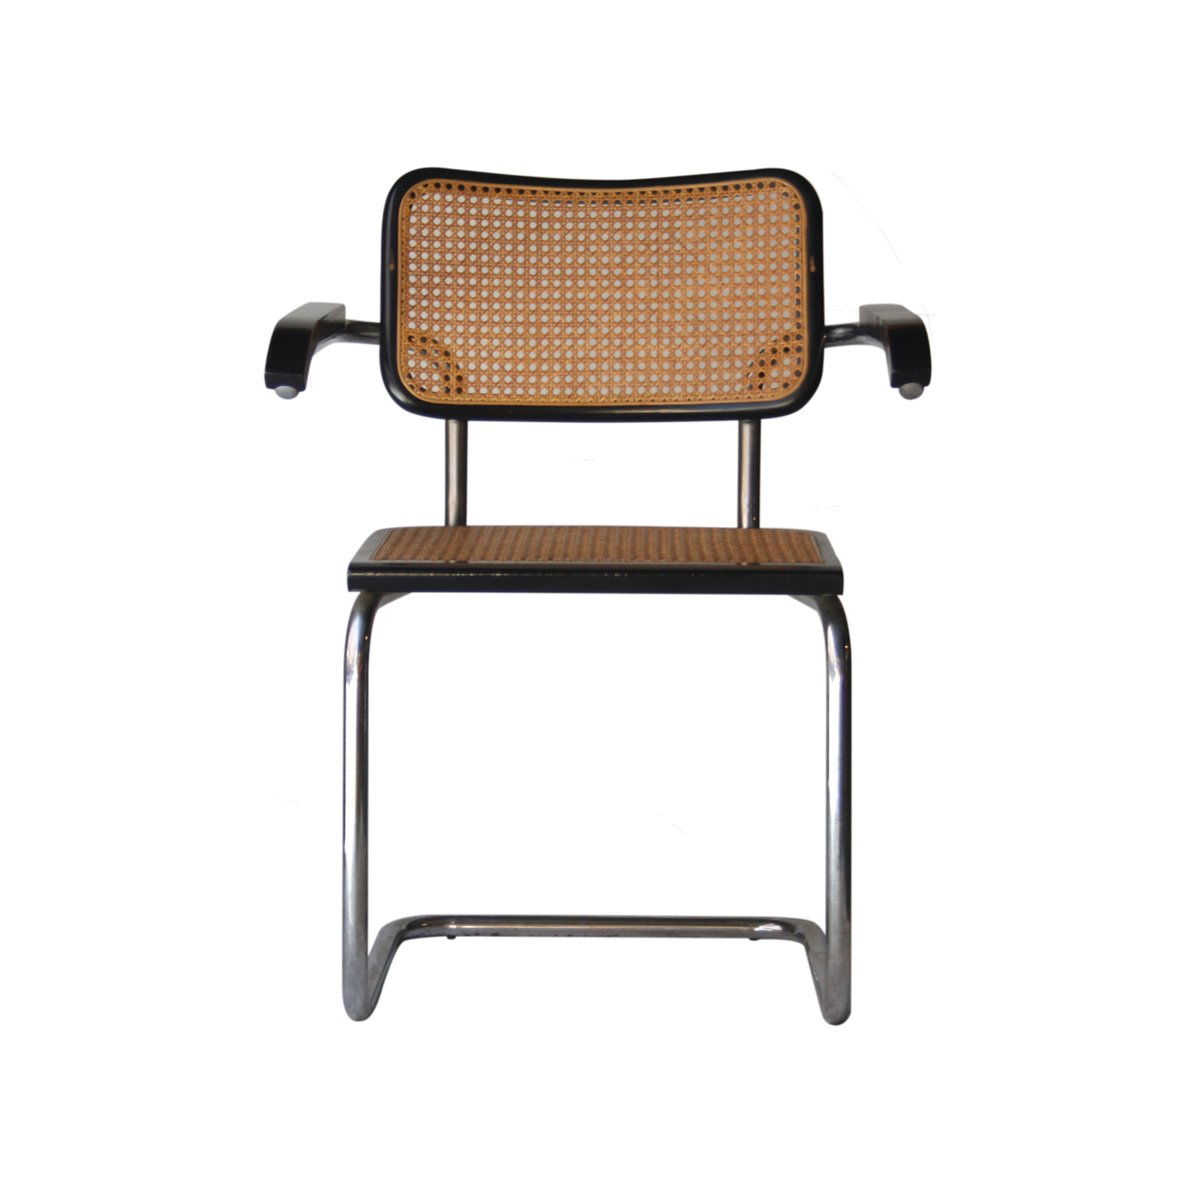 Italian Cesca B64 Chairs By Marcel Breuer For Gavina, 1962, Set Of 5